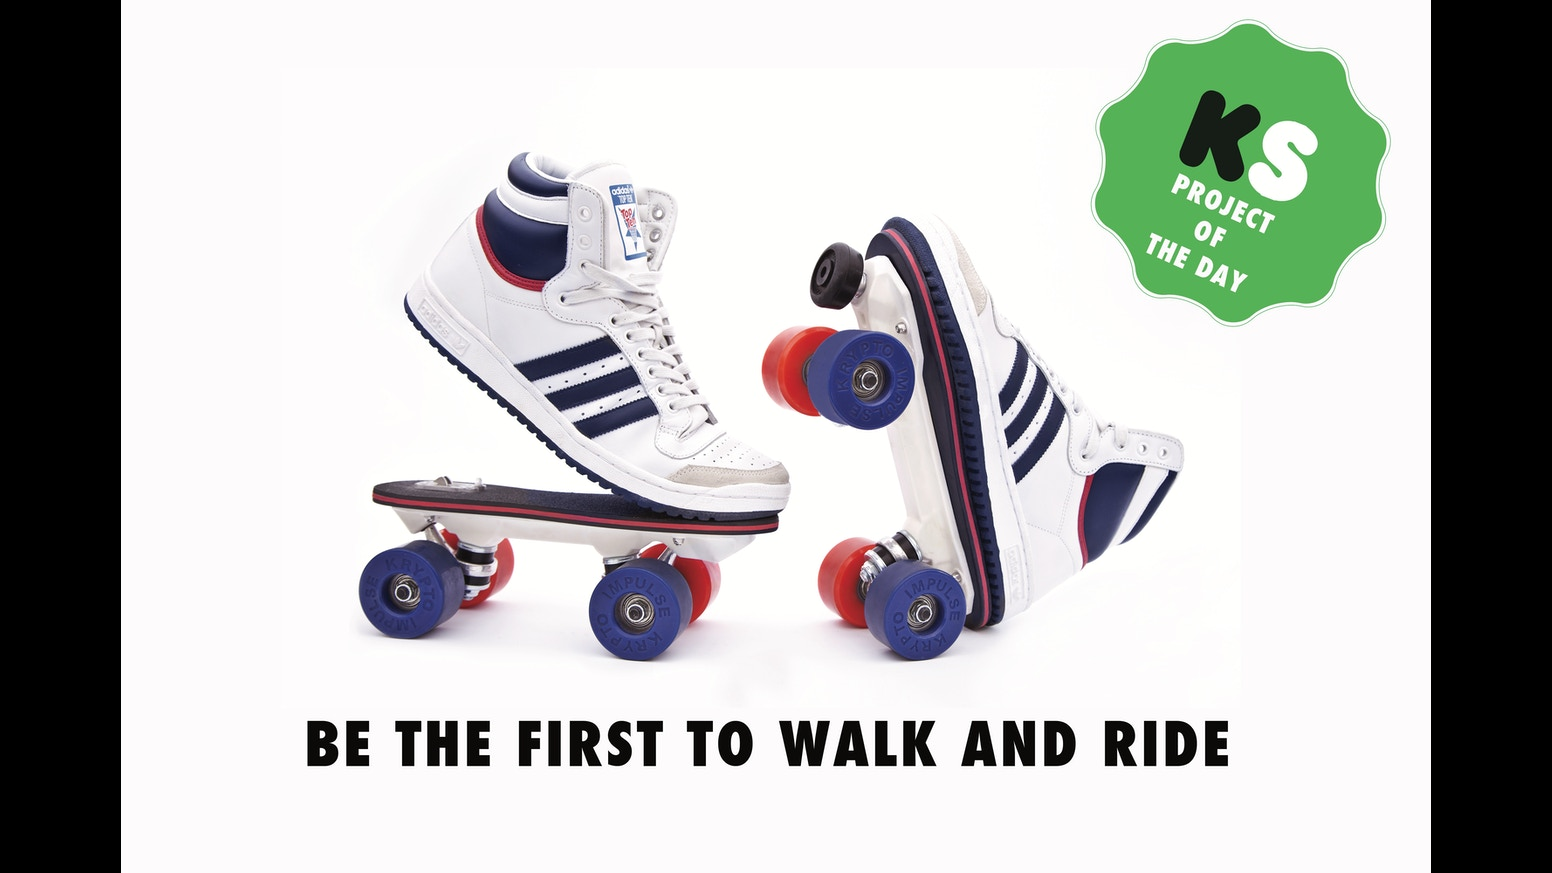 Roller skating shoes price in pakistan - On Wheelz An Awesome Innovation In Urban Mobility By Flaneurz Kickstarter